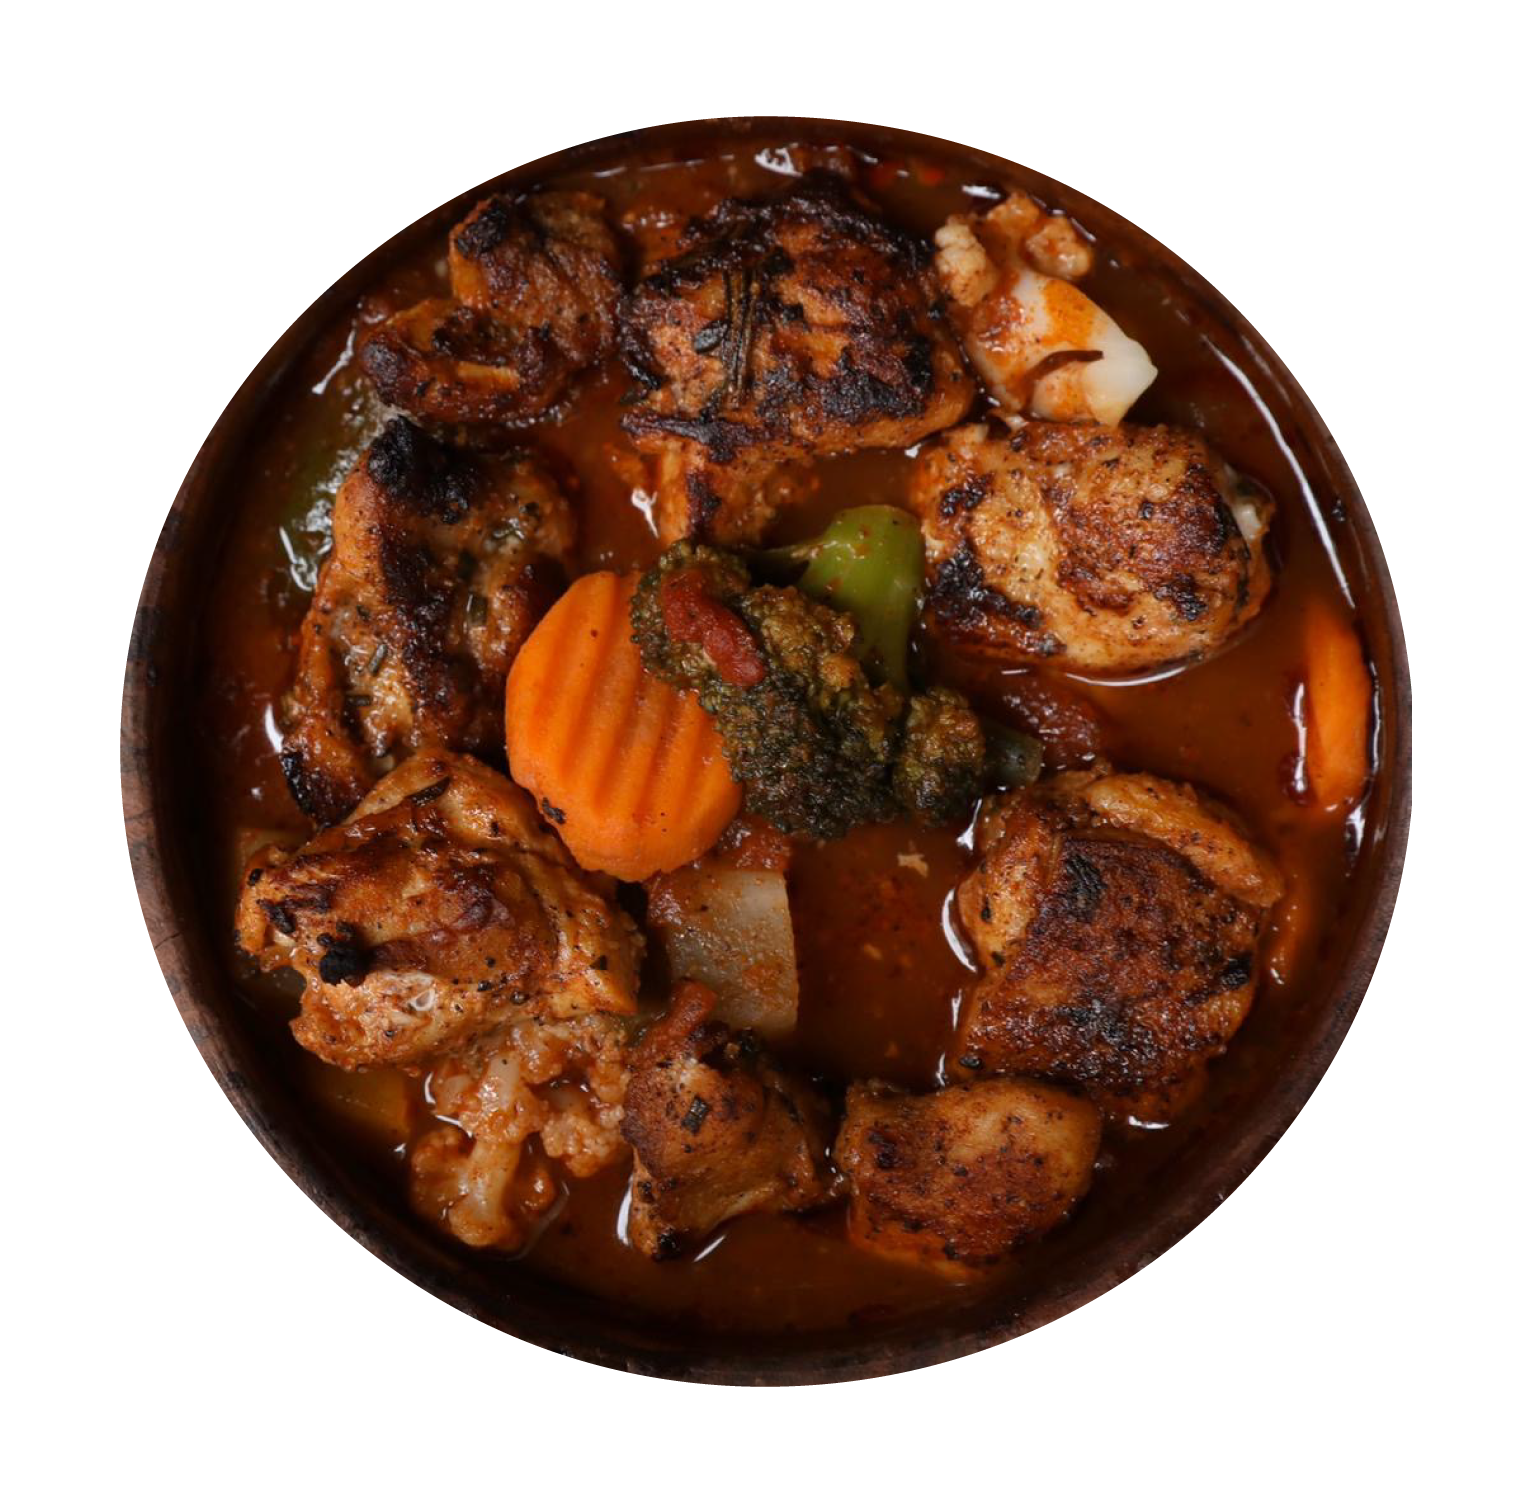 Vegetable Tagine with Chicken